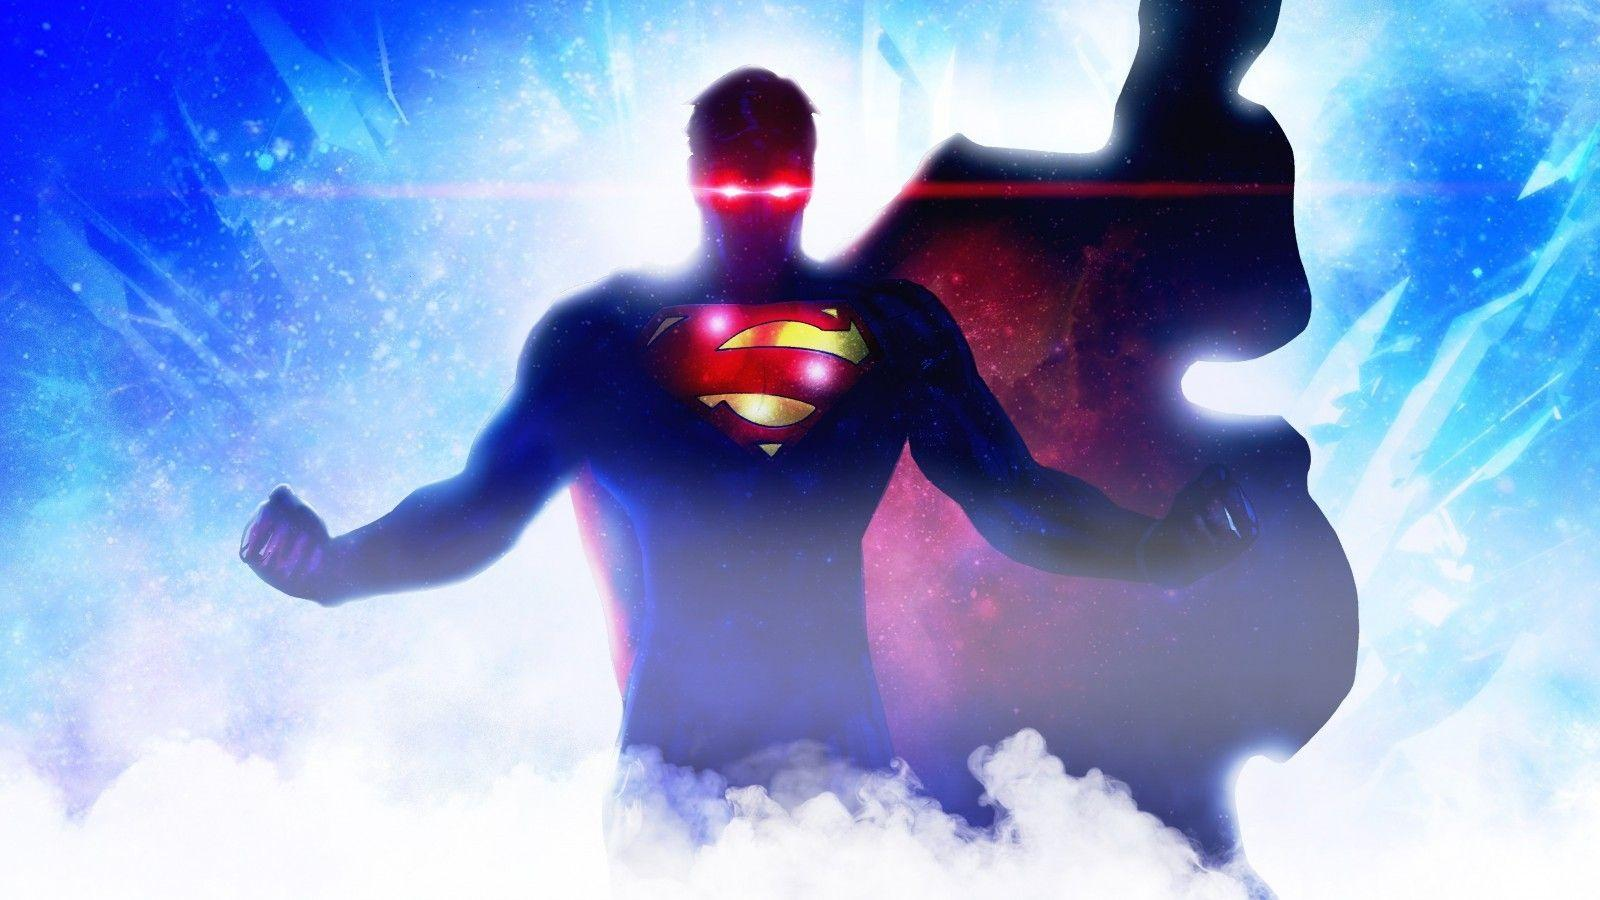 Download 1600x900 Superman, Artwork, Red Eyes, Cape Wallpapers